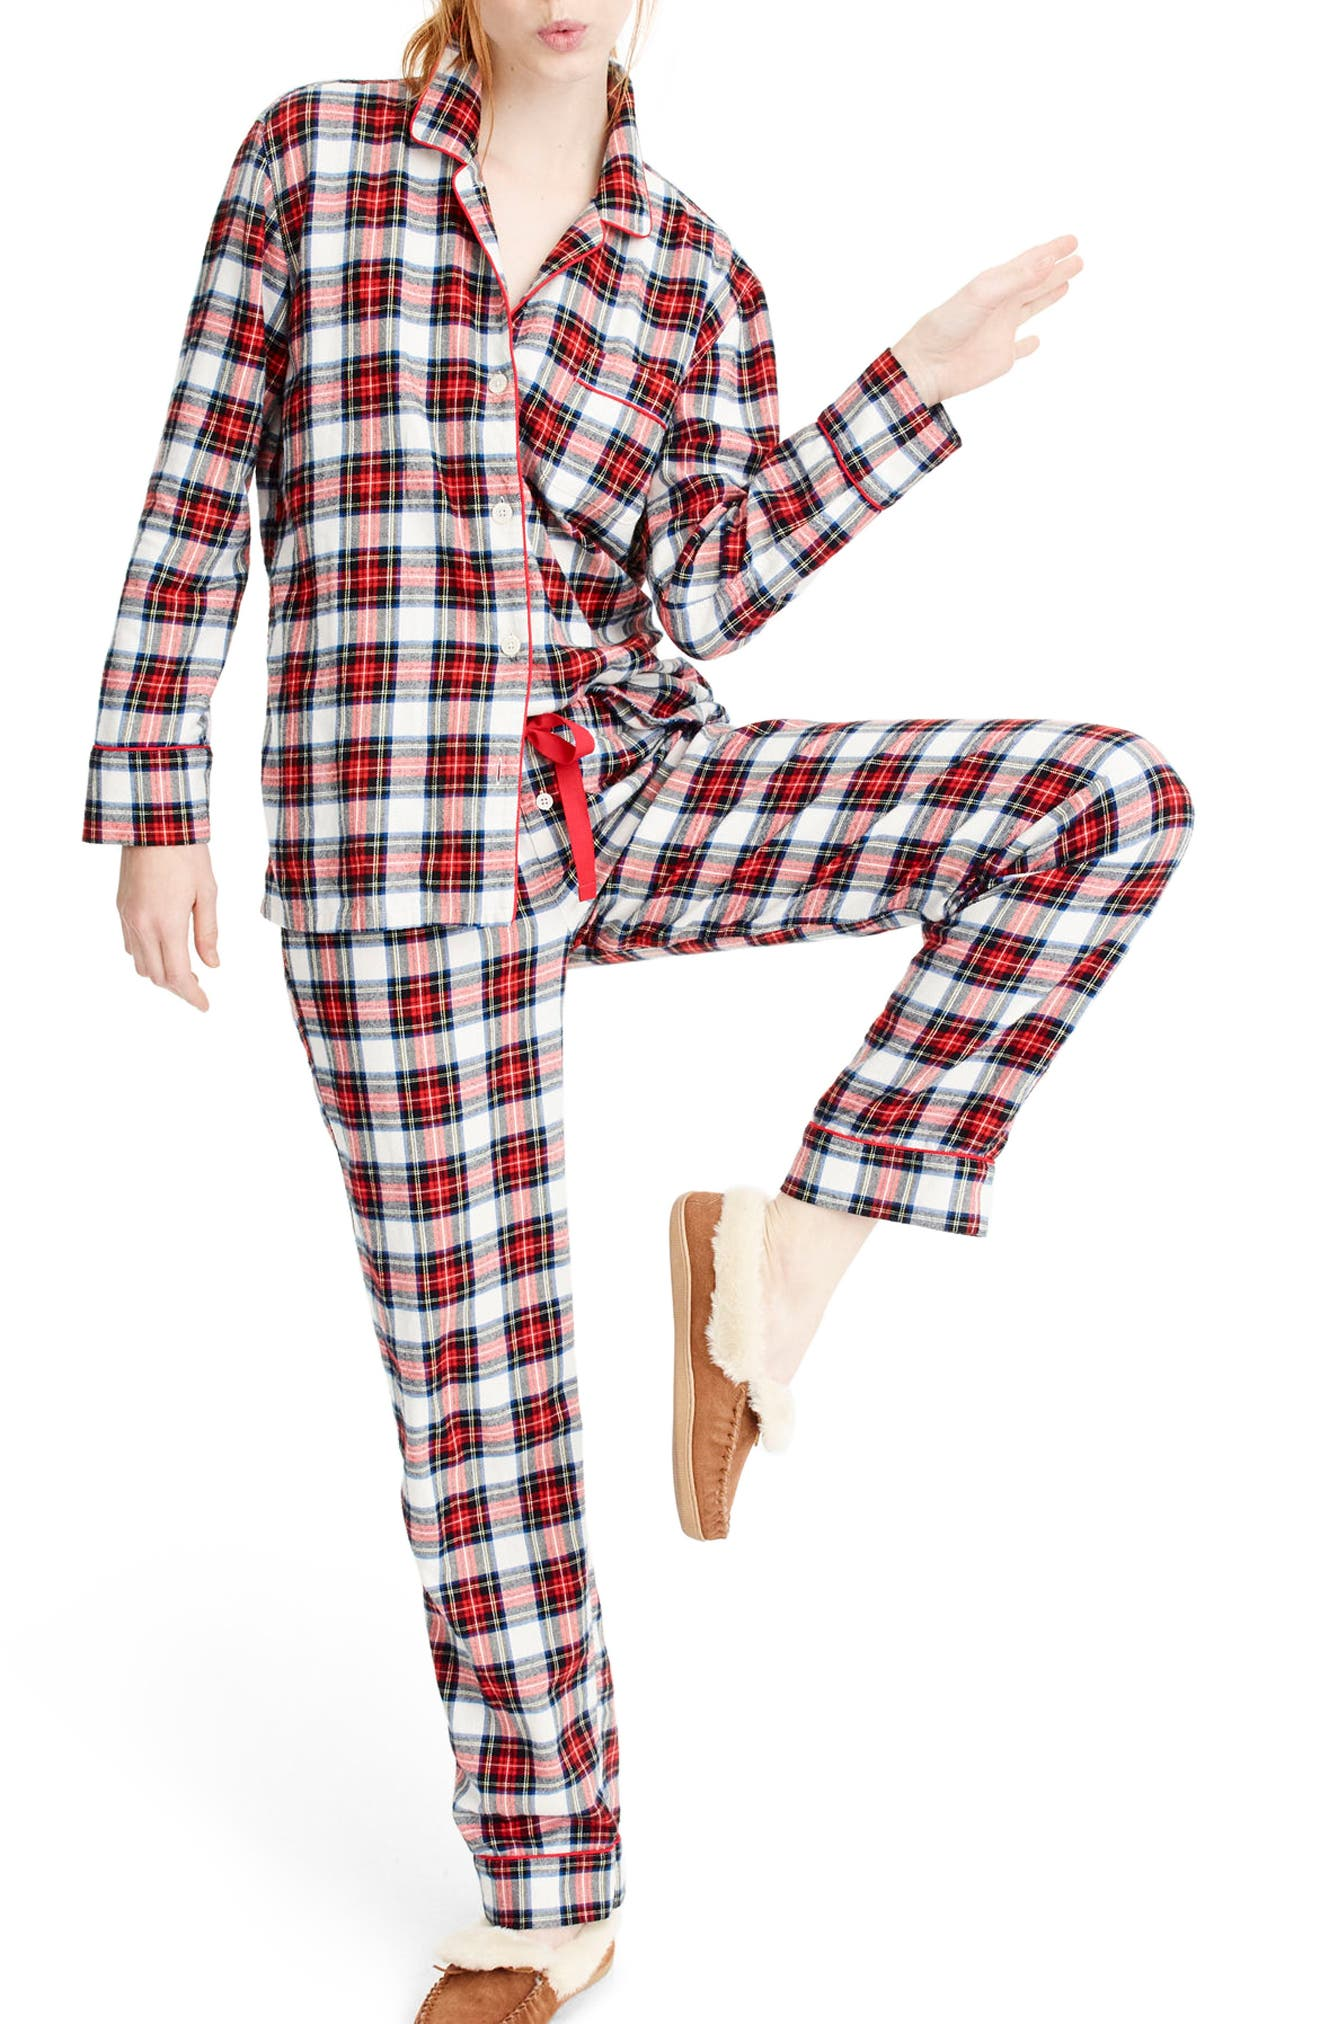 Whiteout Plaid Flannel Pajamas,                         Main,                         color, Red Navy